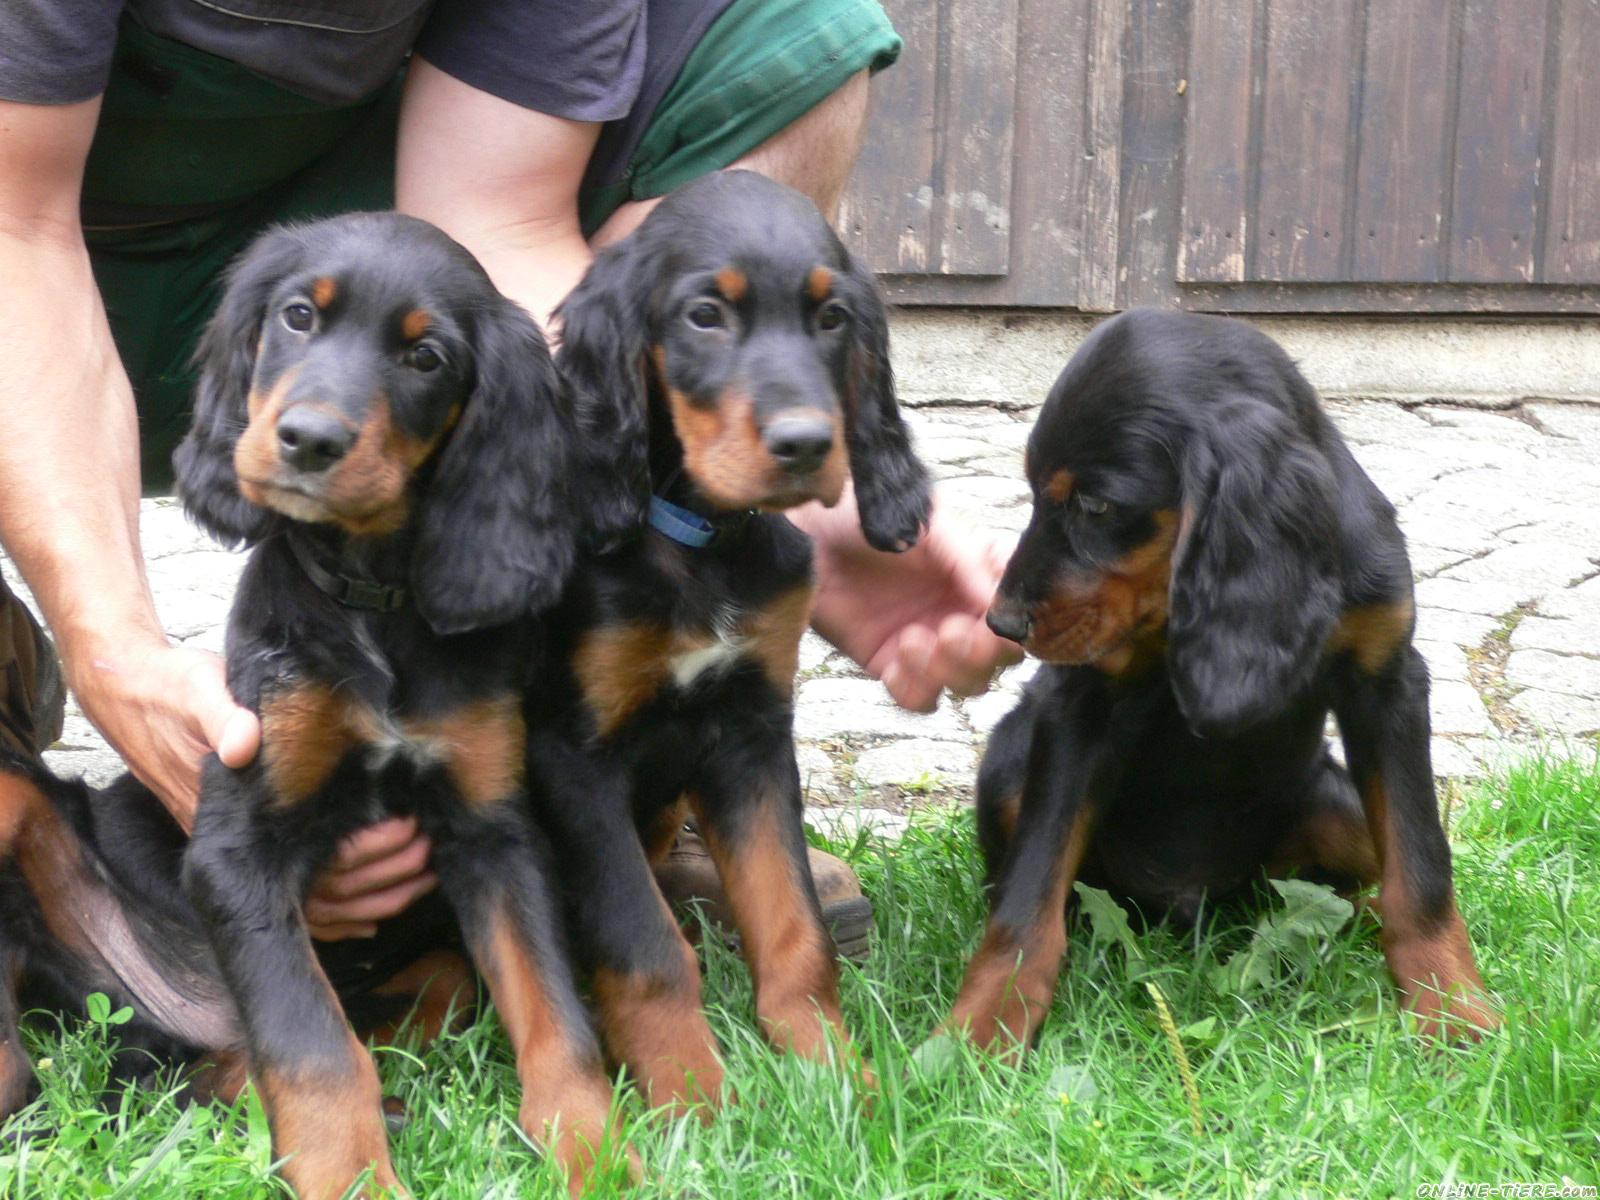 Three cute Gordon Setter puppies playing with their owner